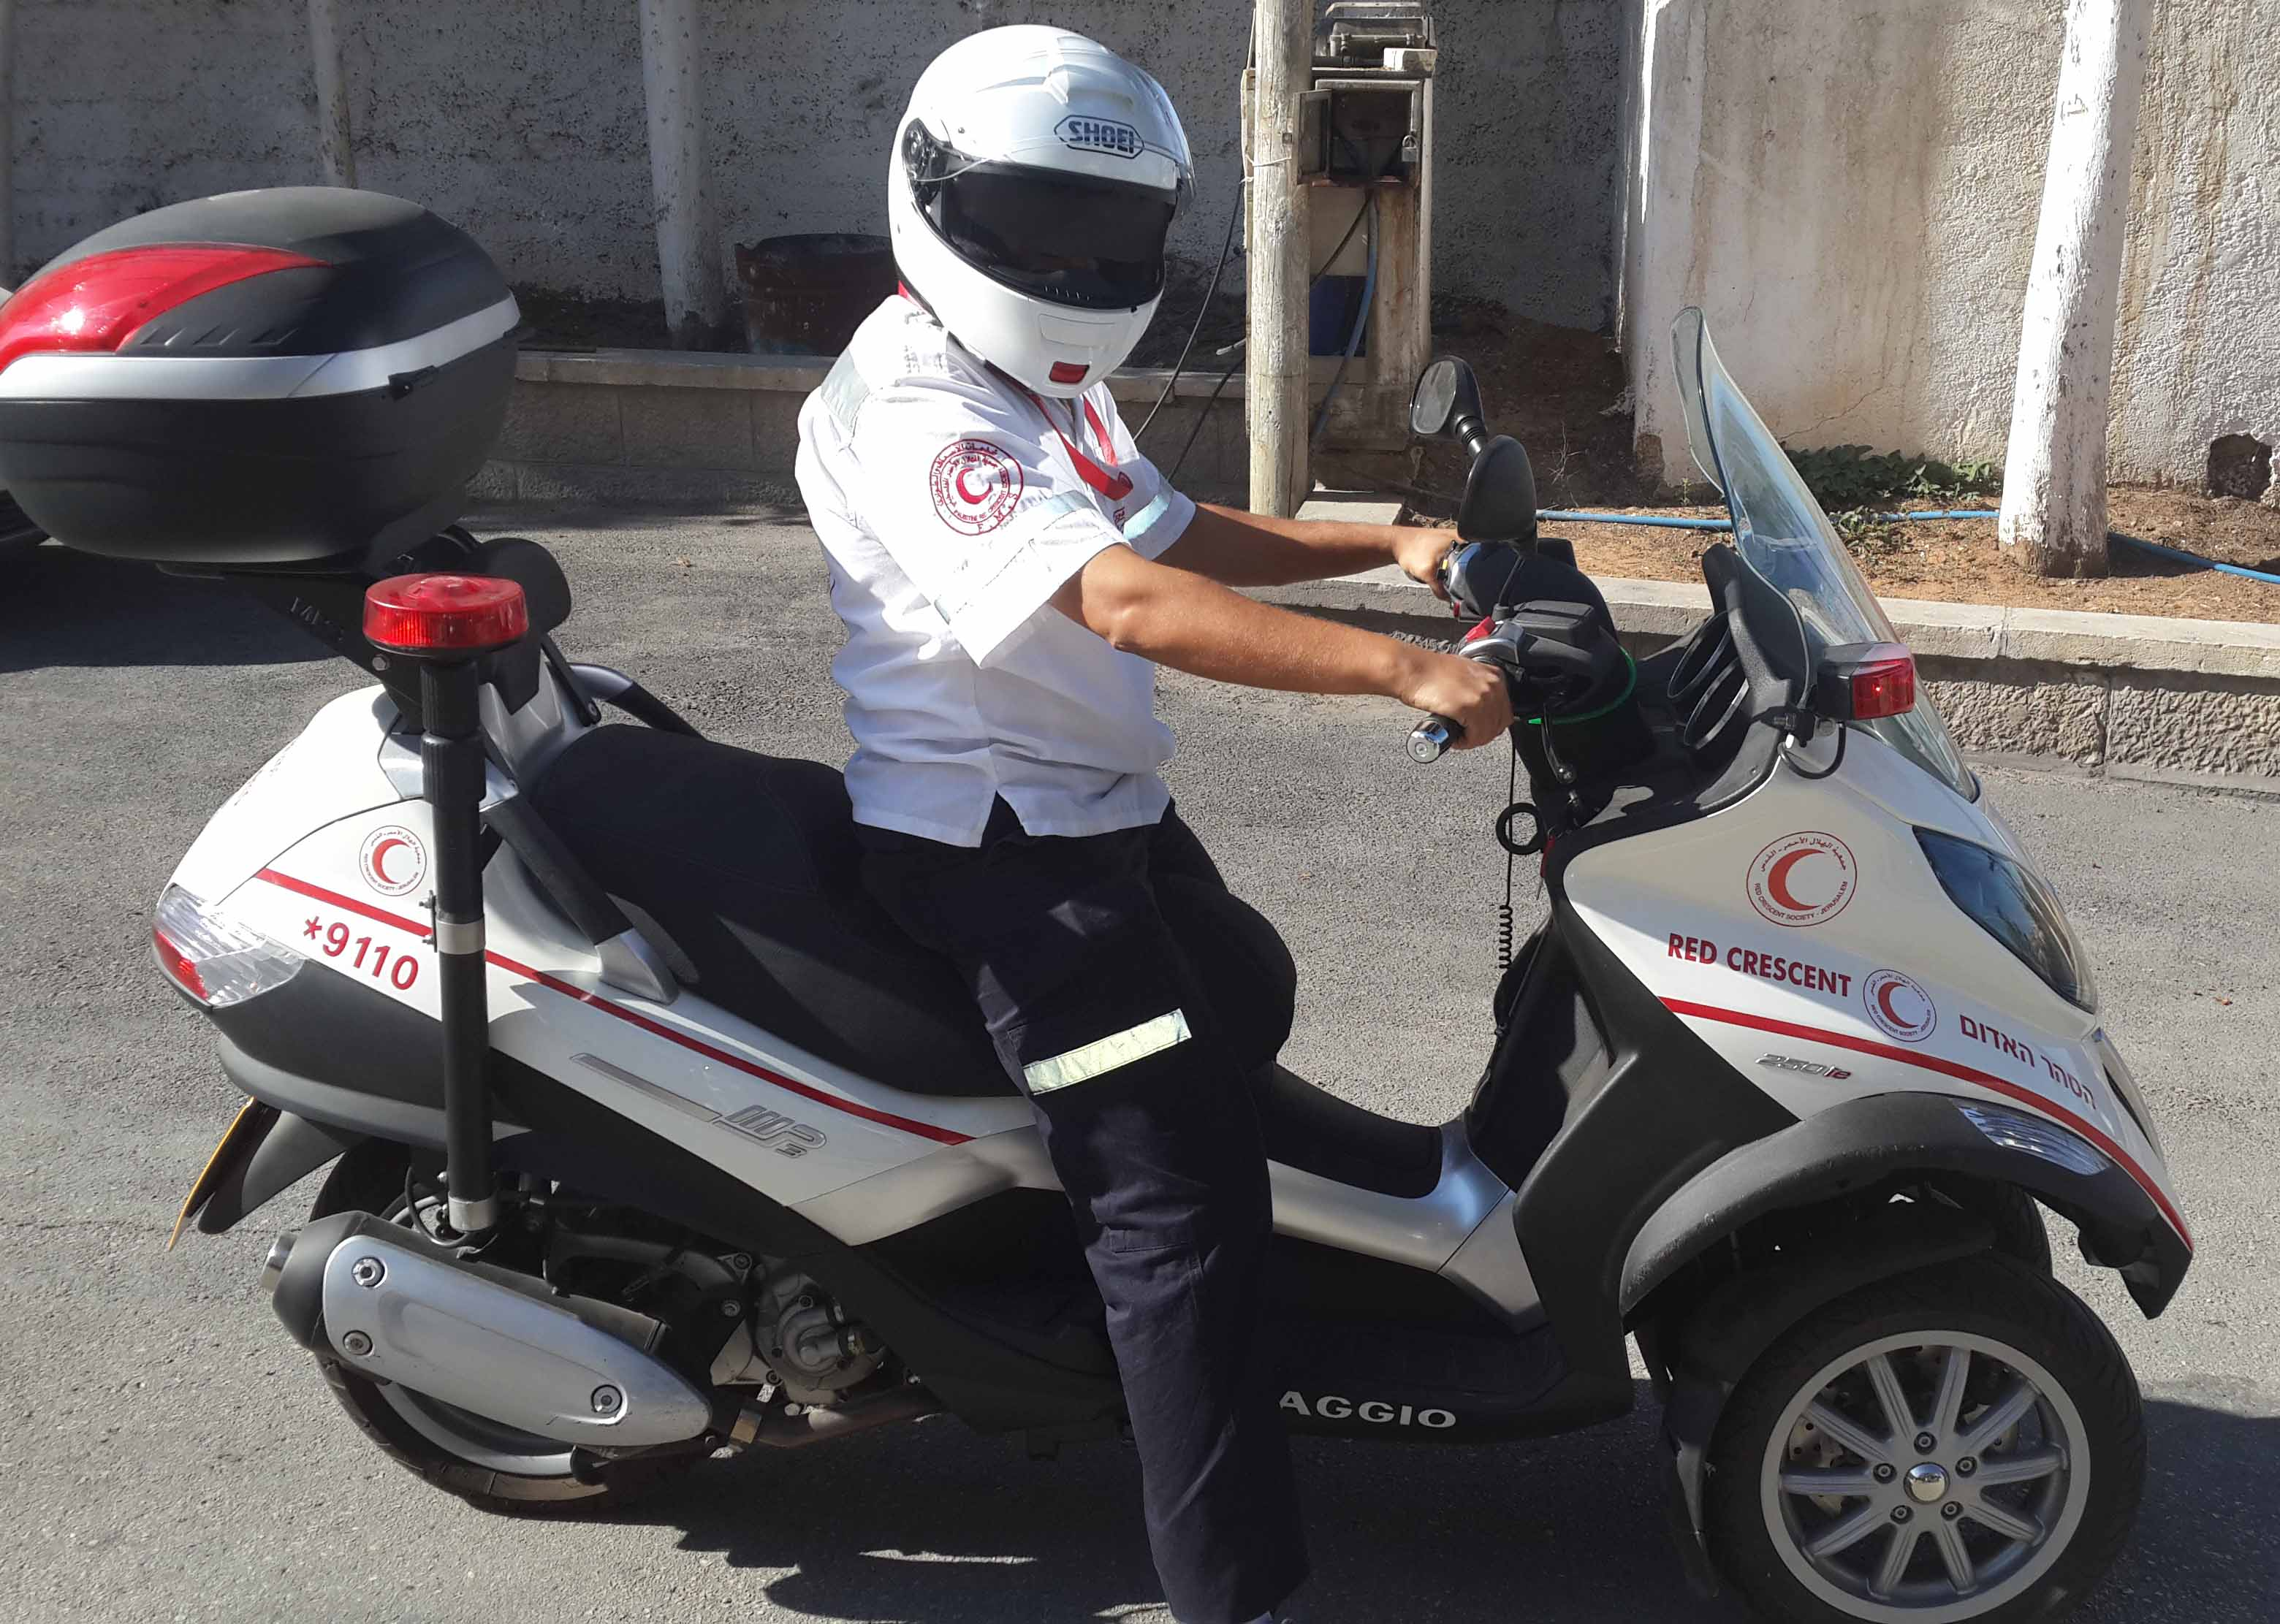 EMS Motorcycle